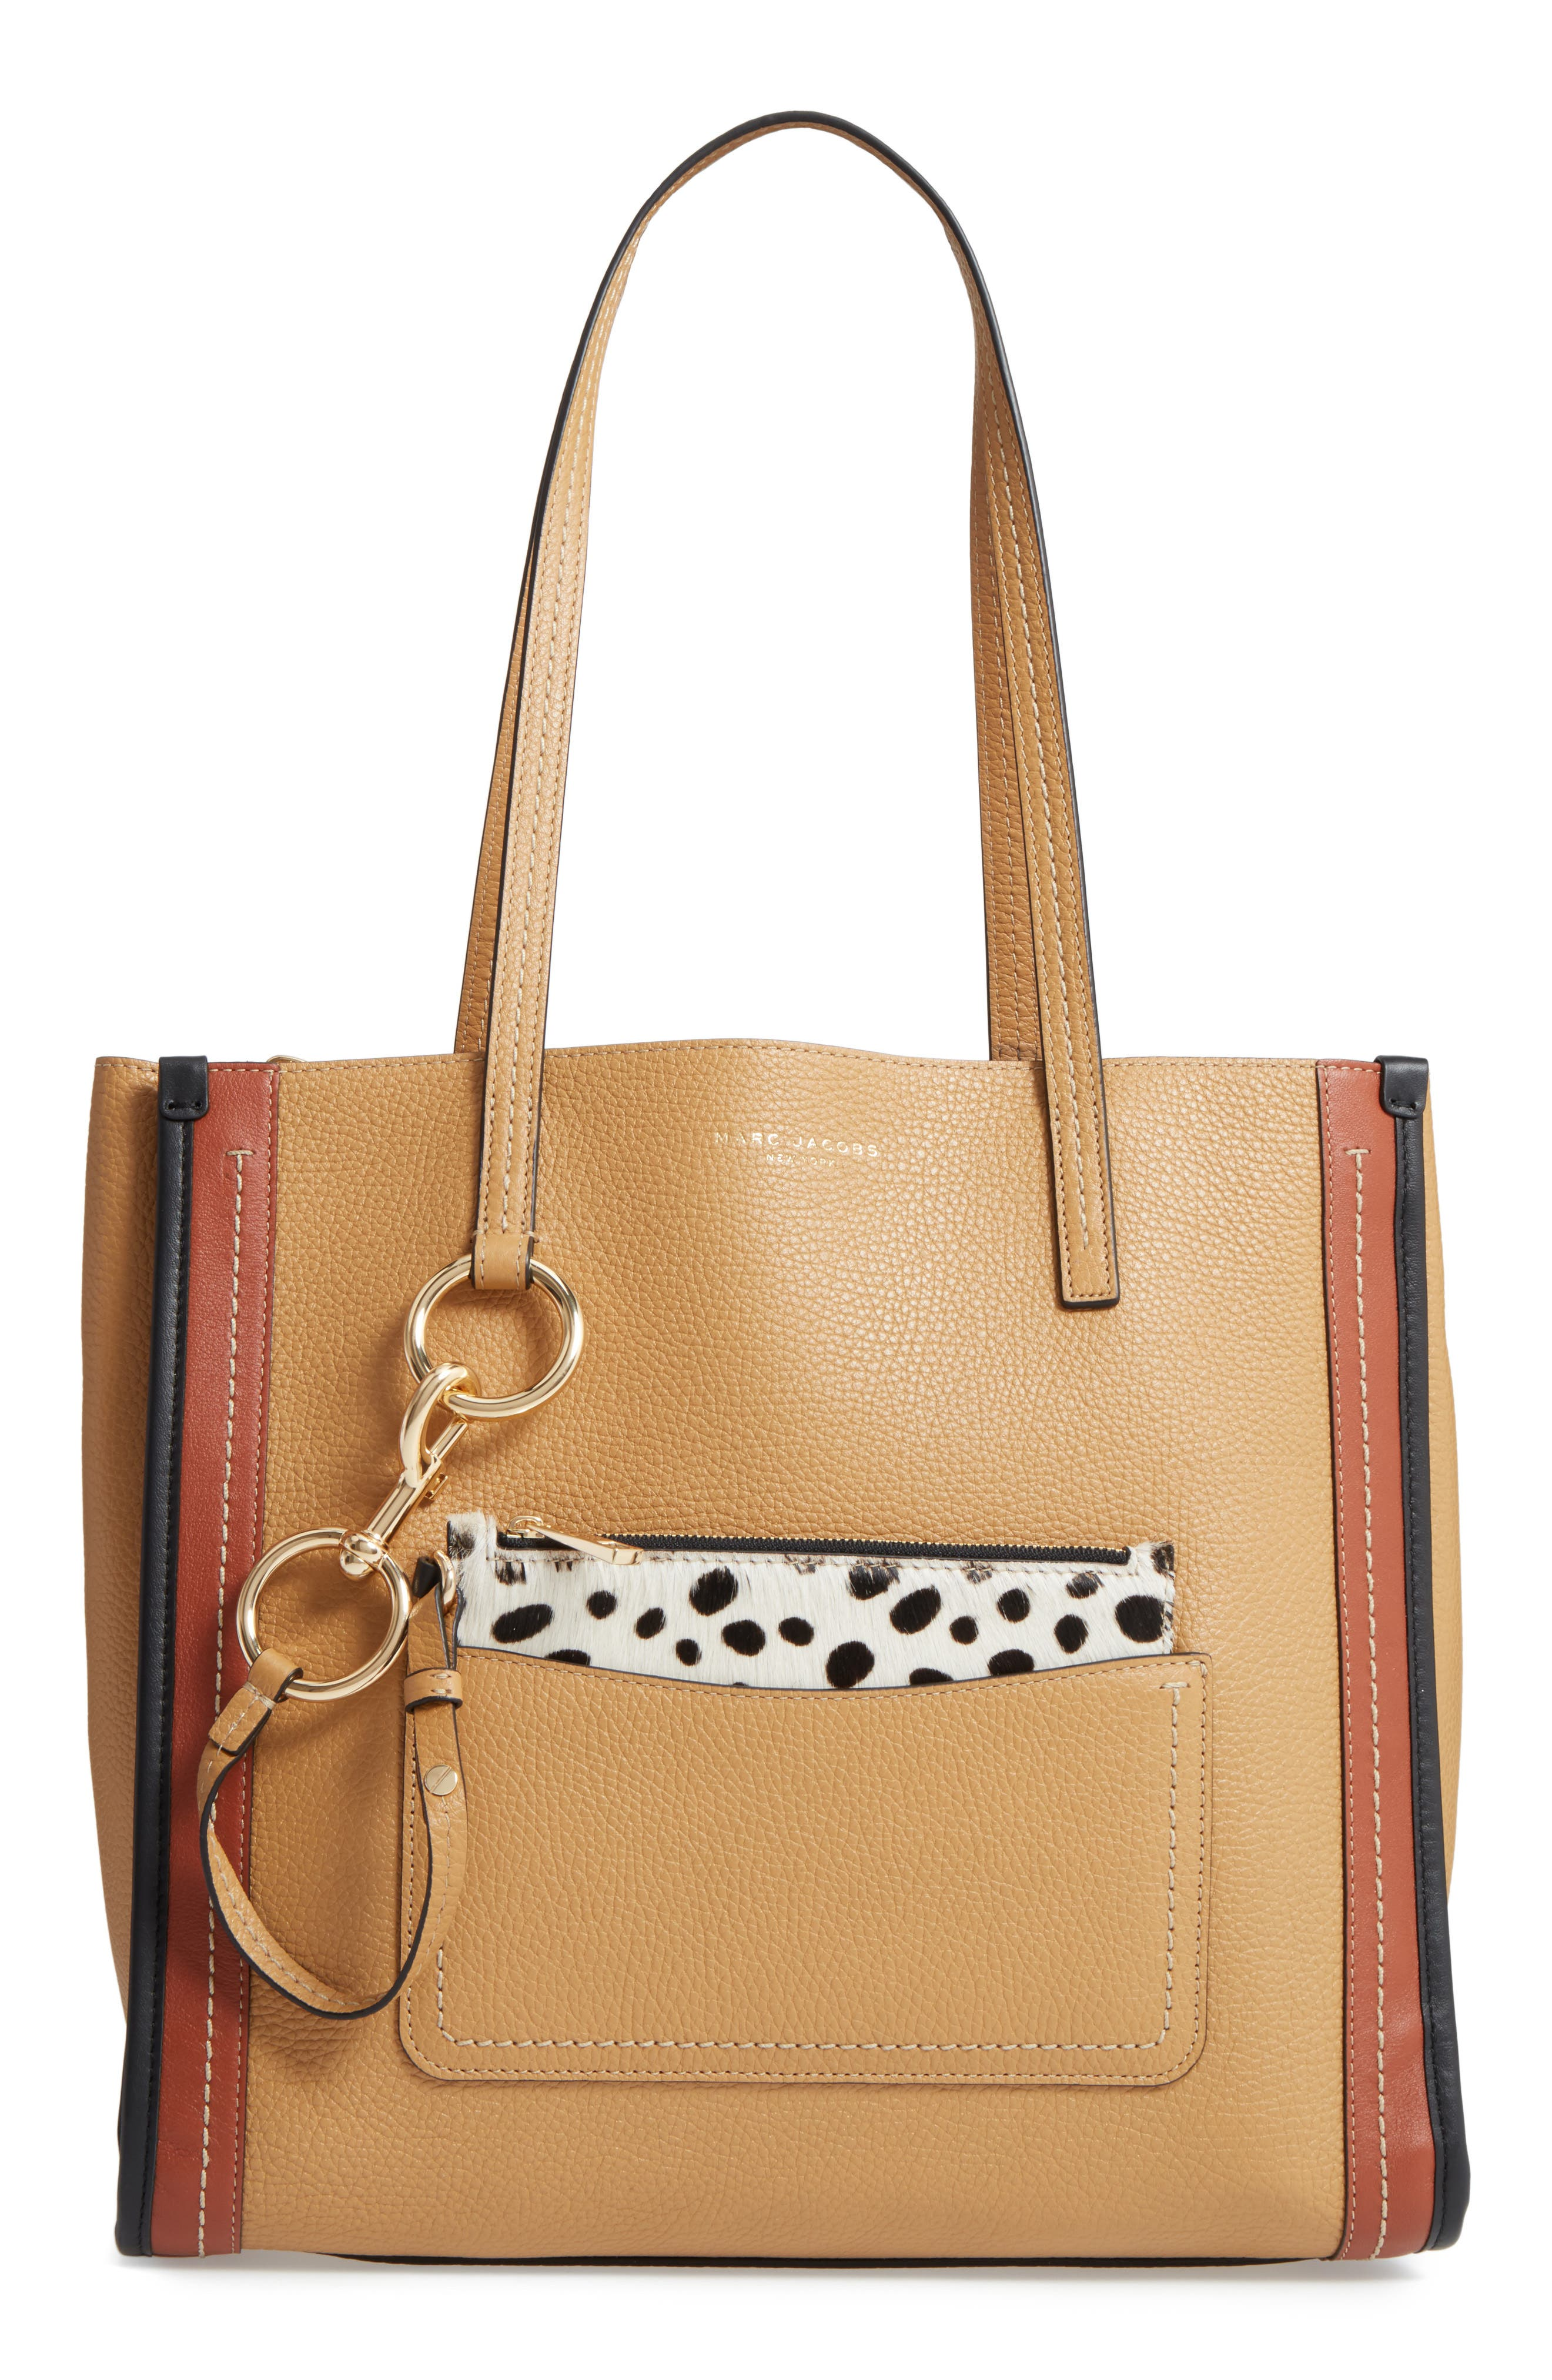 MARC JACOBS The Dalmatian Grind East/West Leather Shopper & Genuine Calf Hair Pouch